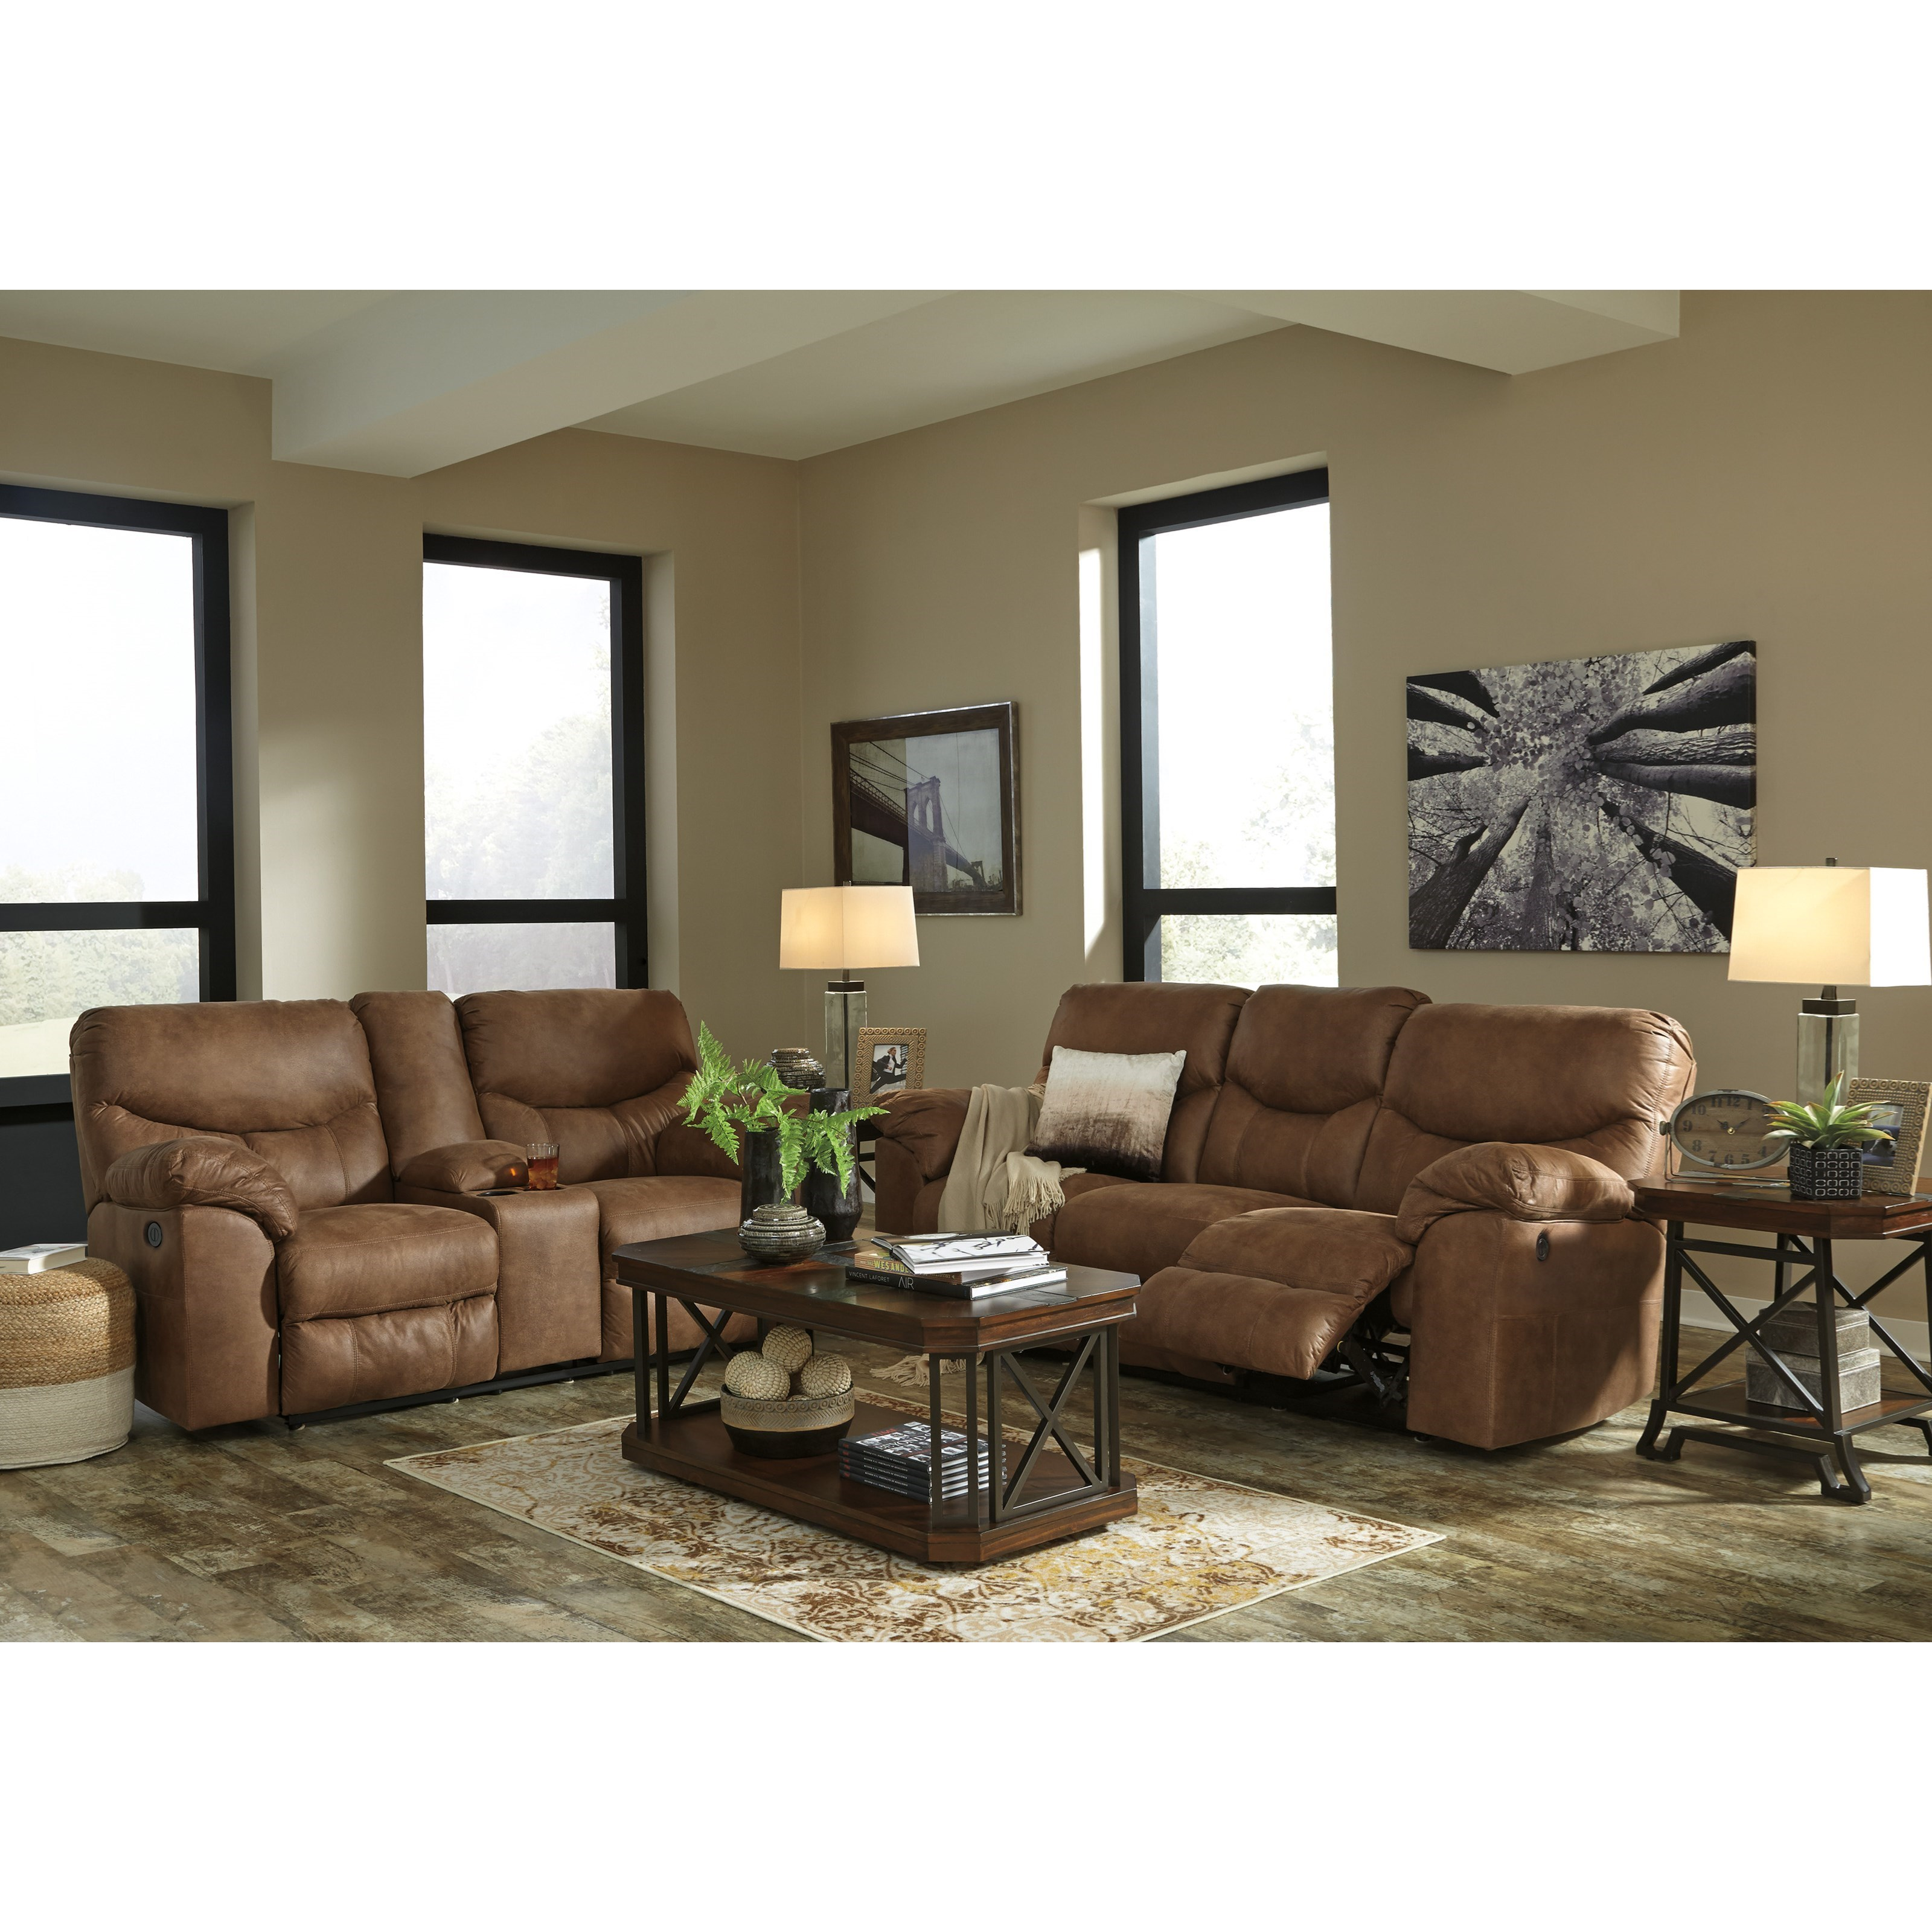 Signature design by ashley boxberg reclining living room for Living room furniture groups